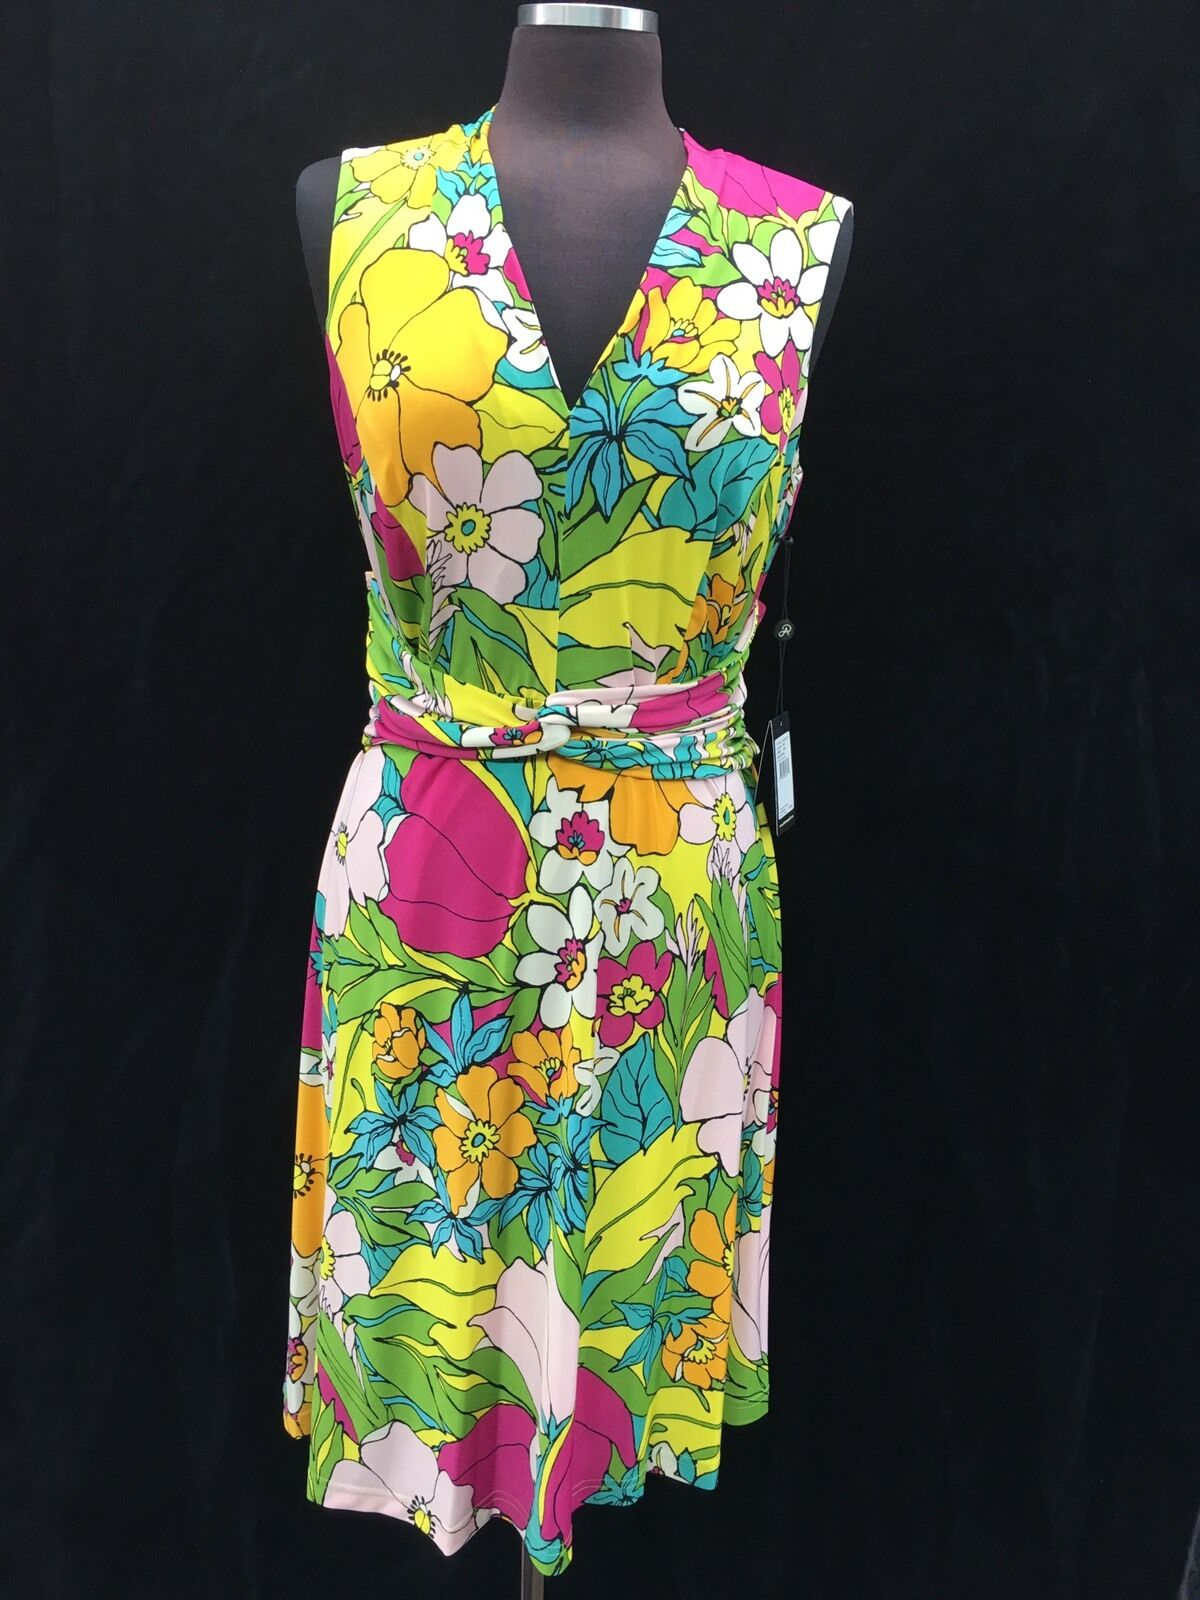 ADRIANNA PAPELL DRESS  NEW WITH TAG SIZE 14W RETAIL 140  STRETCH FABRIC